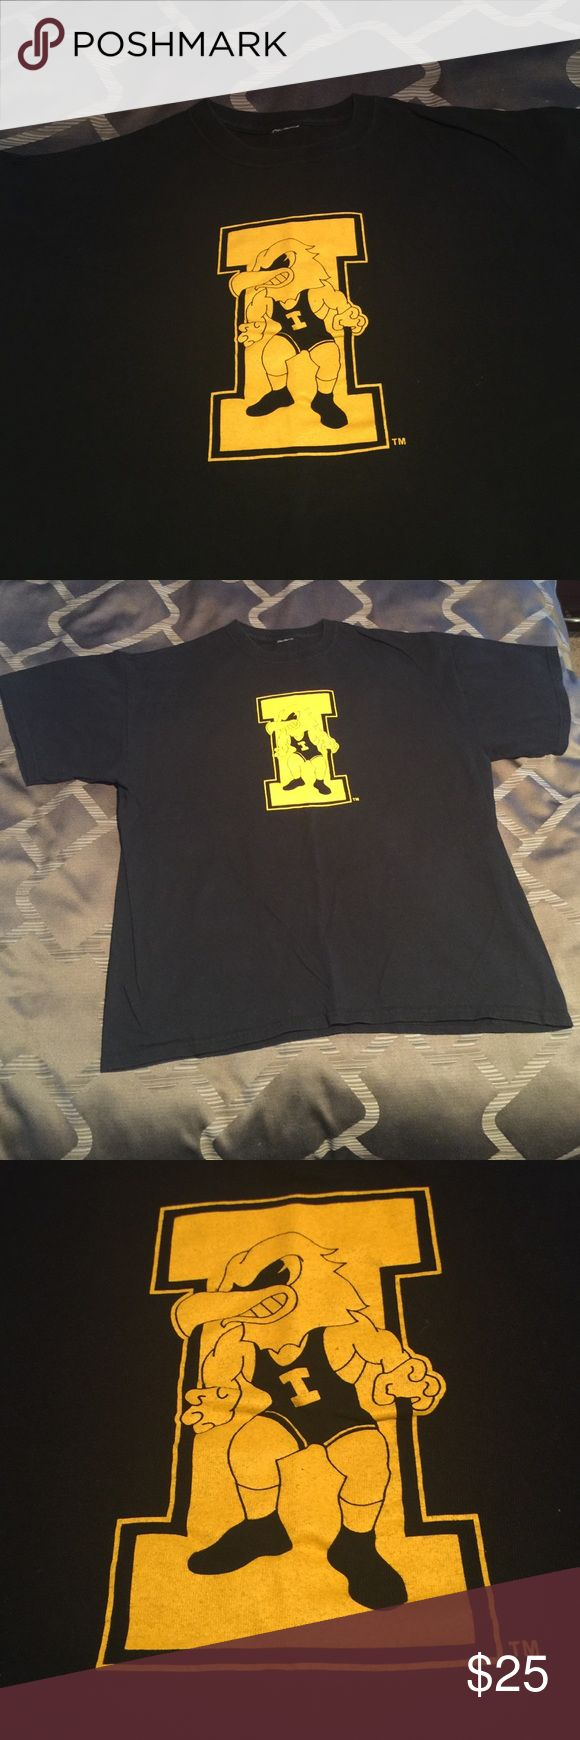 IOWA Hawkeye Wrestling T-shirt In excellent condition. Tag is missing, underarm to underarm is approximately 22.5 inches. Would say it's a large or X-Large. Top to bottom is 26.5 inches. Brand is unknown. Gildan Shirts Tees - Short Sleeve